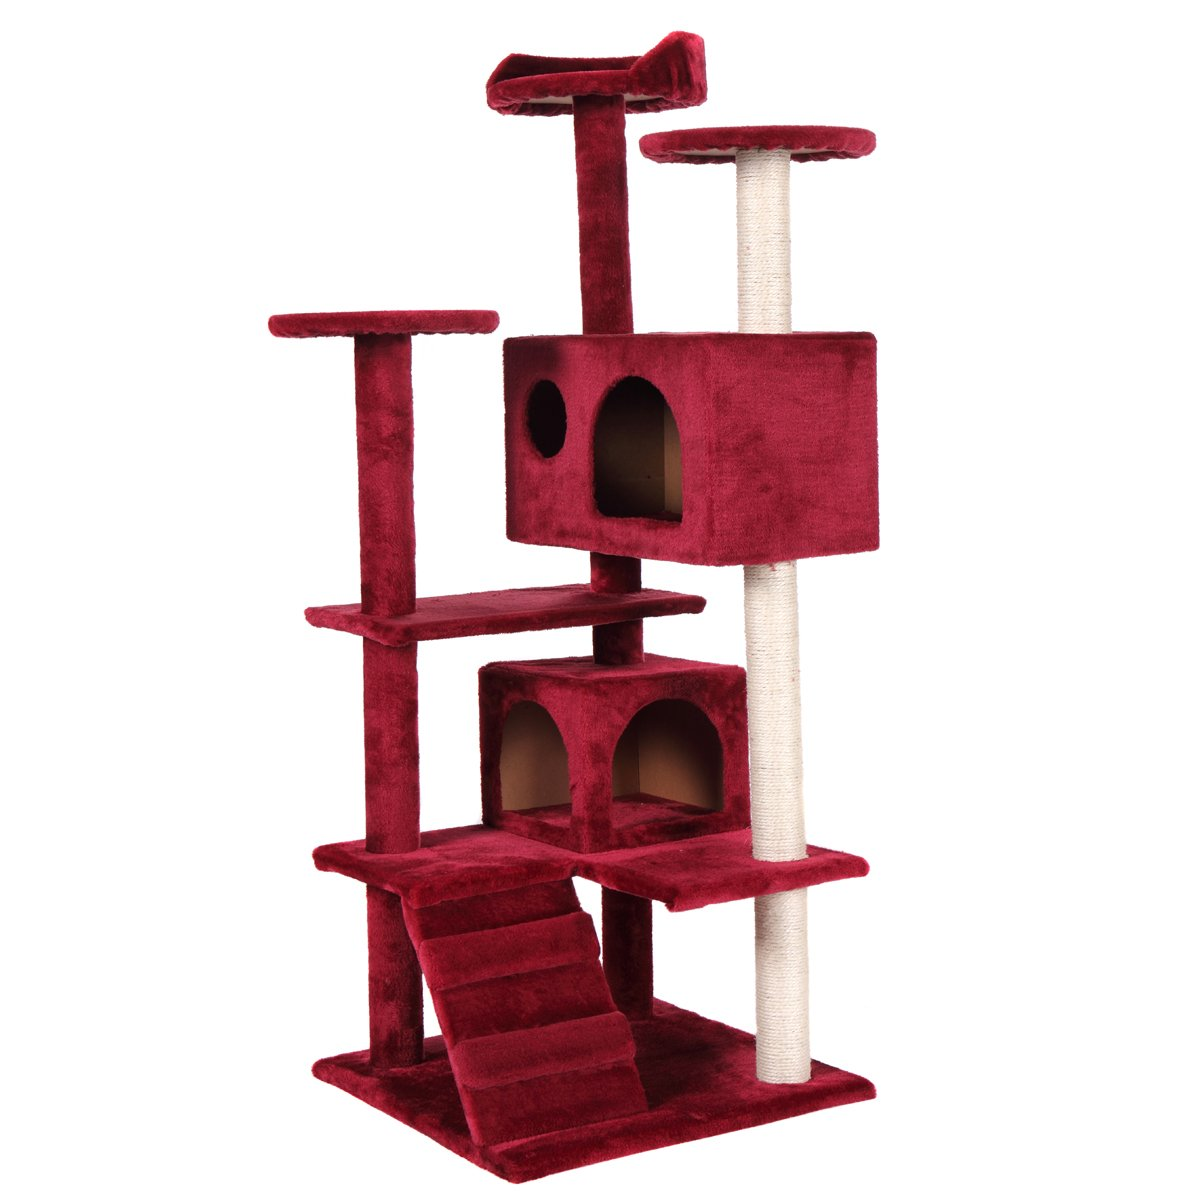 JAXPETY Cat Tree Tower Condo Furniture Scratch Post Kitty Pet House Play Red NEW